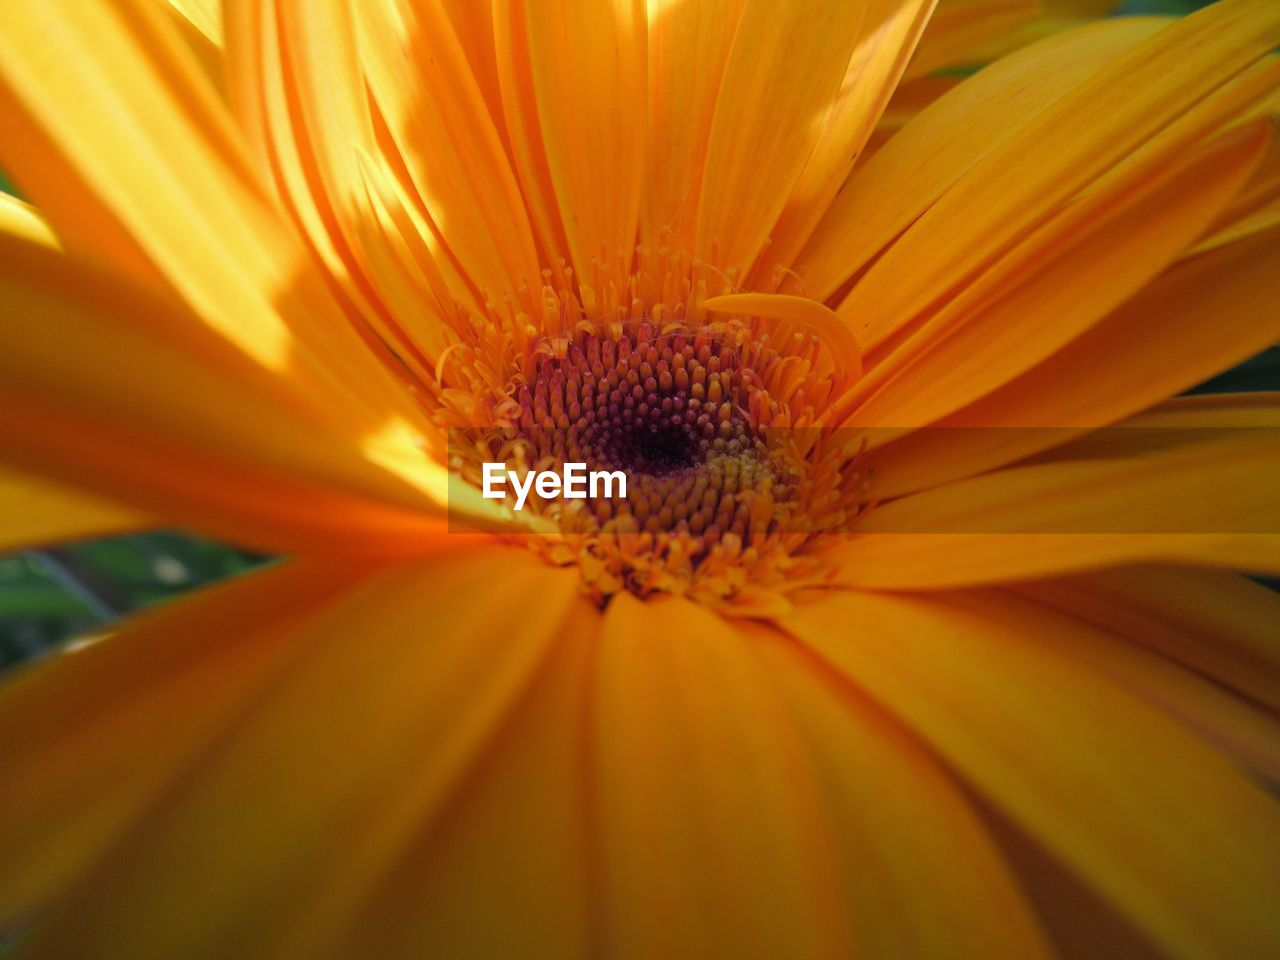 flowering plant, flower, petal, flower head, beauty in nature, vulnerability, freshness, inflorescence, fragility, growth, plant, close-up, pollen, no people, nature, day, yellow, full frame, outdoors, gazania